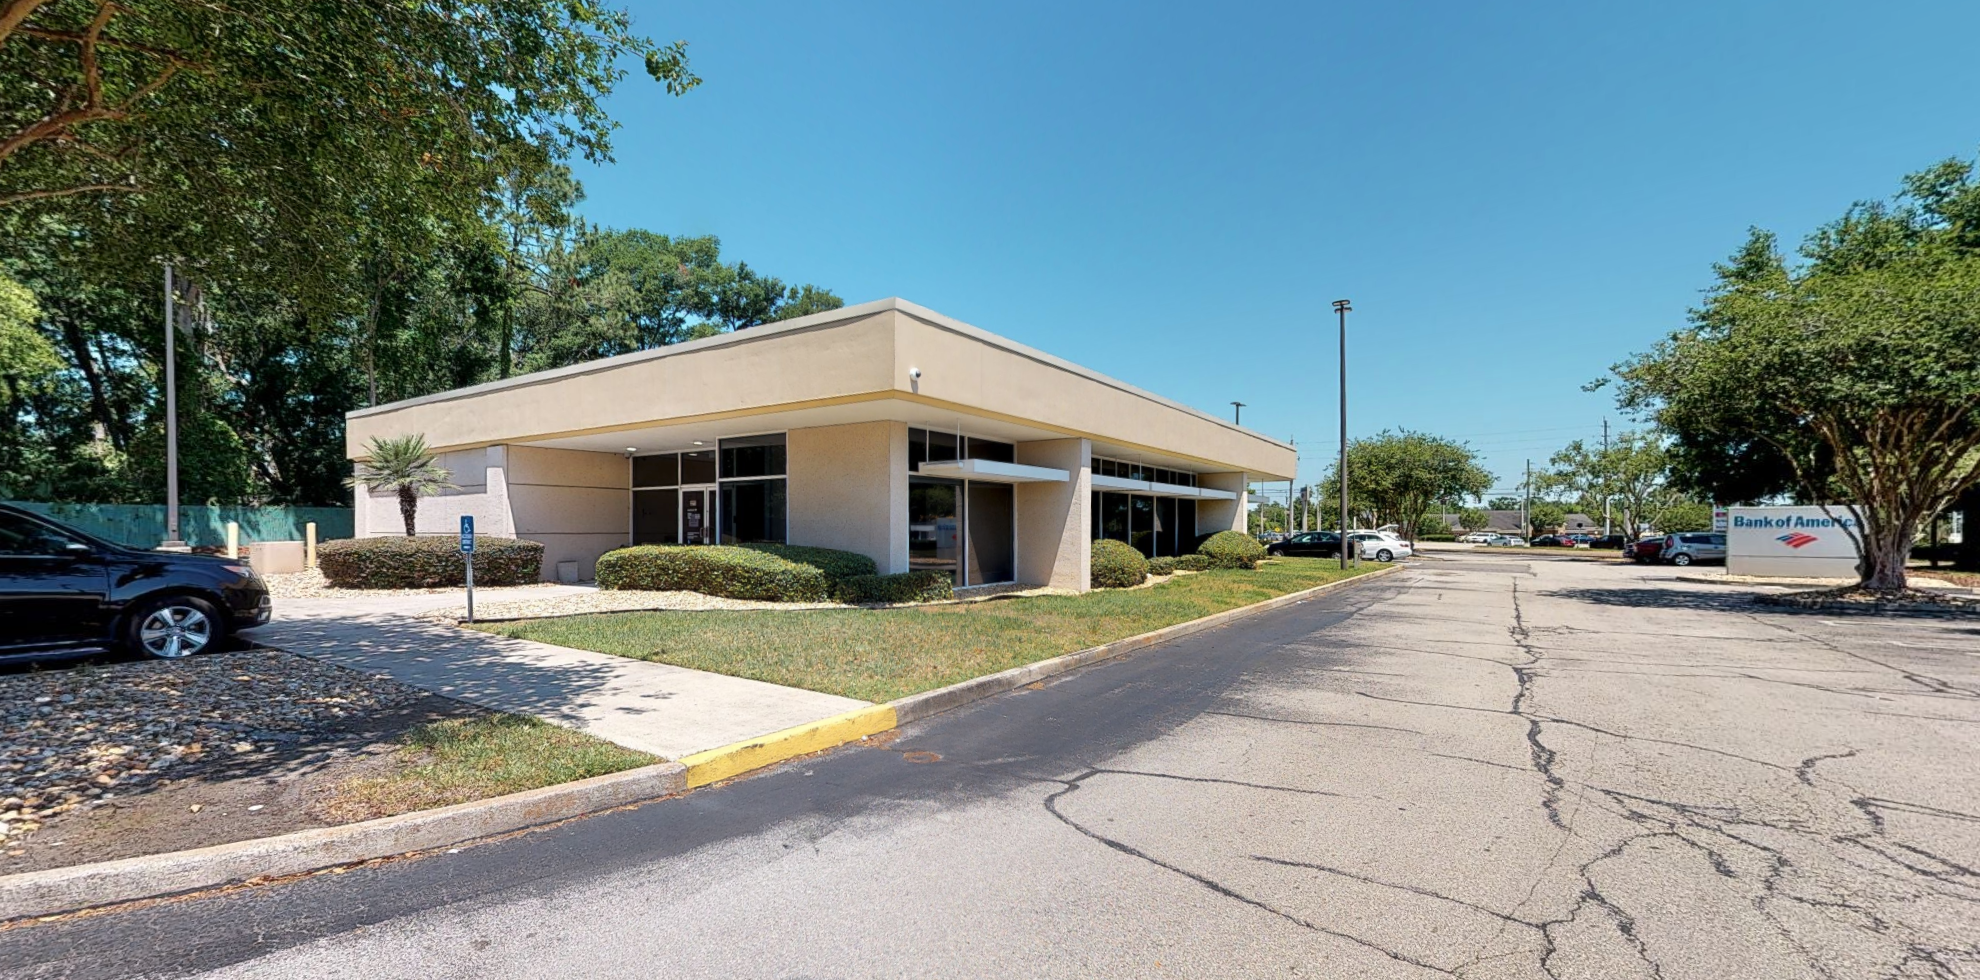 Bank of America financial center with drive-thru ATM | 7770 Normandy Blvd, Jacksonville, FL 32221